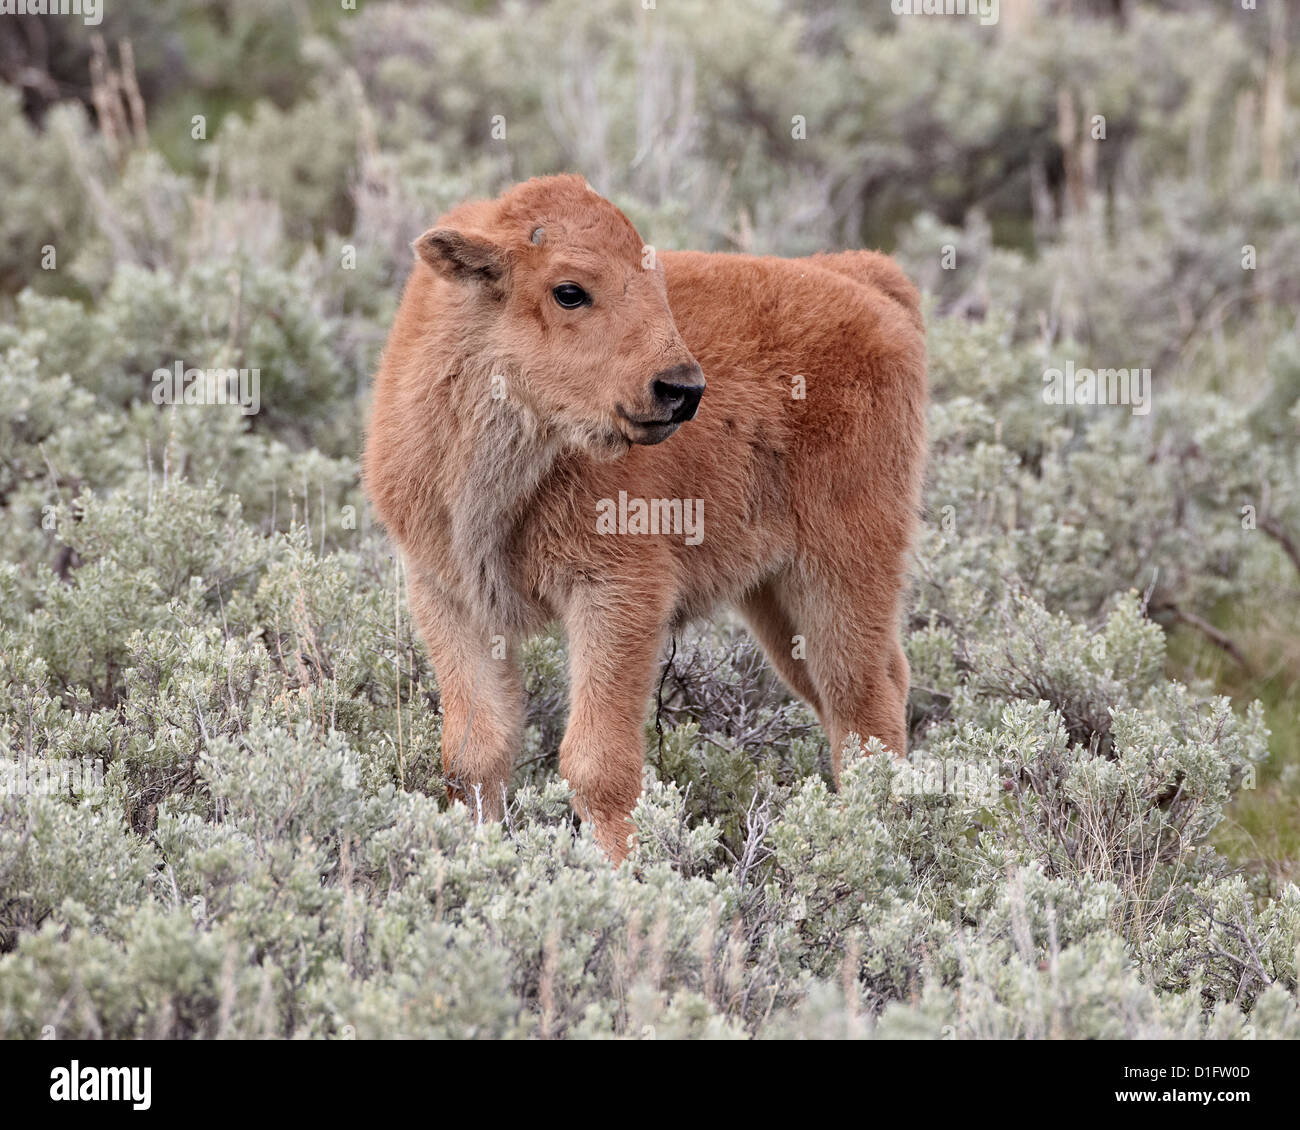 Bison (Bison bison) calf, Yellowstone National Park, Wyoming, United States of America, North America Stock Photo